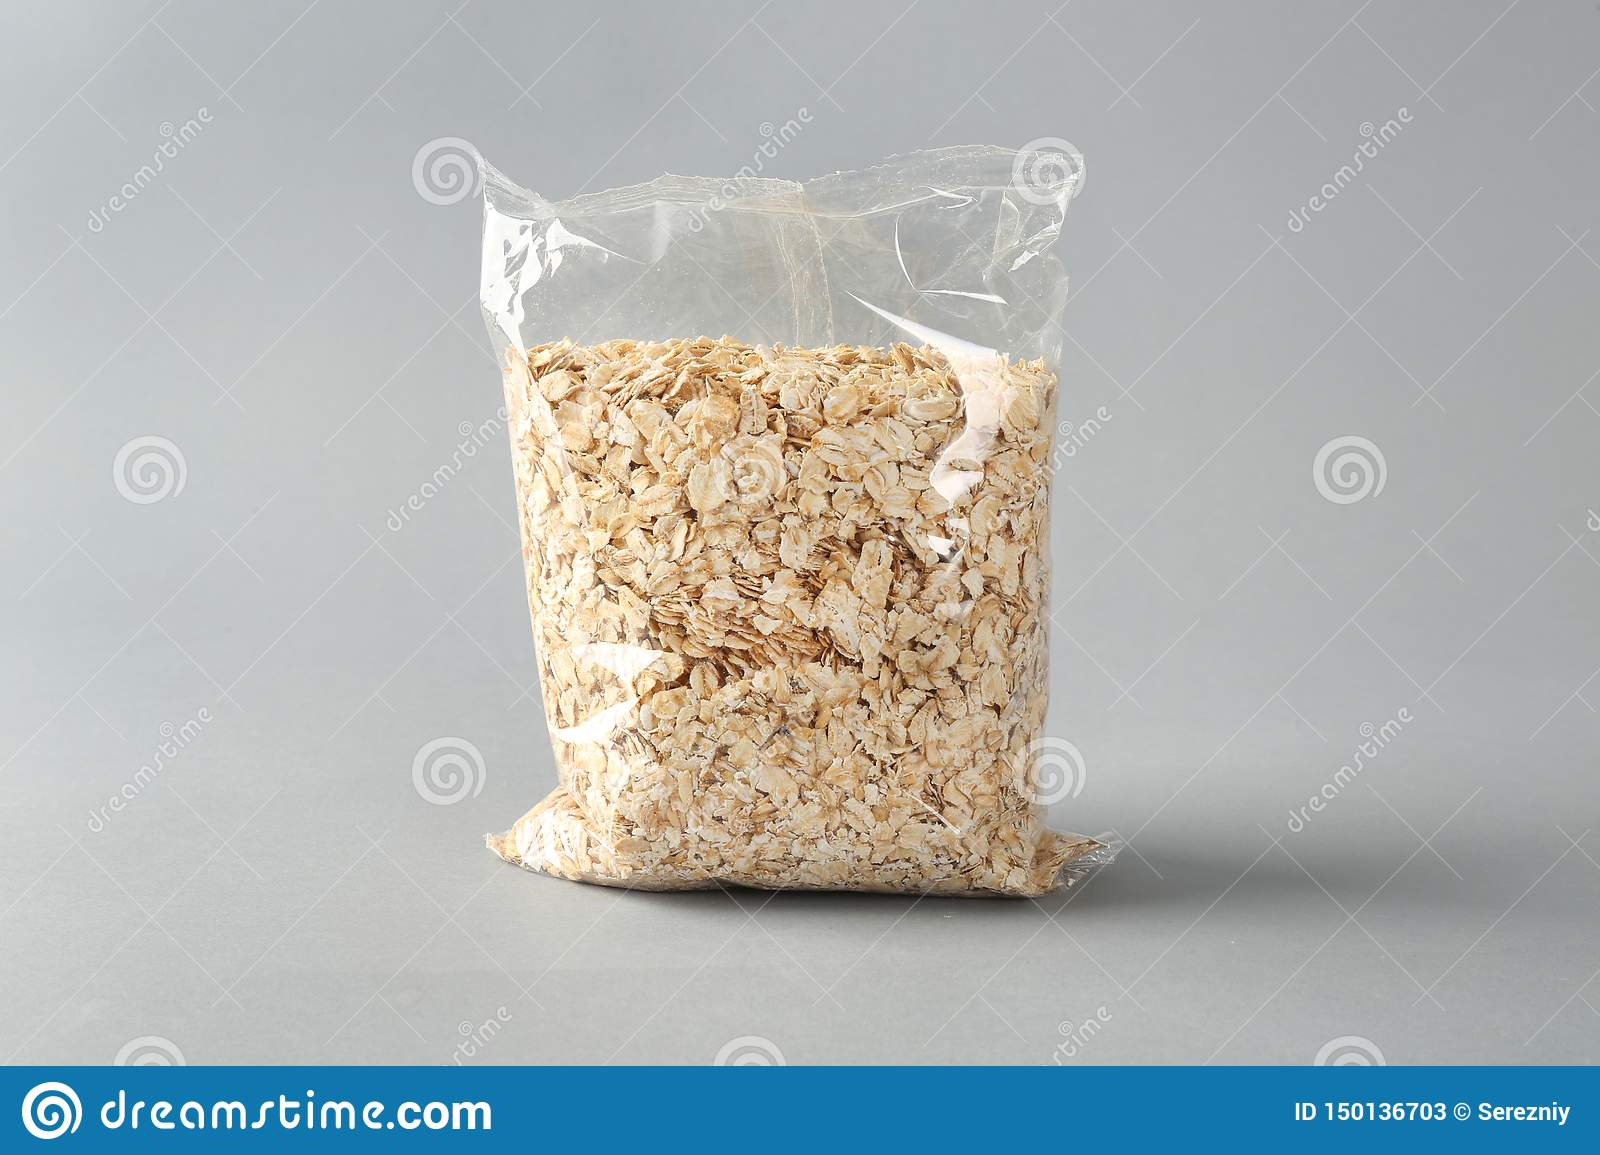 Package with raw oatmeal on light background